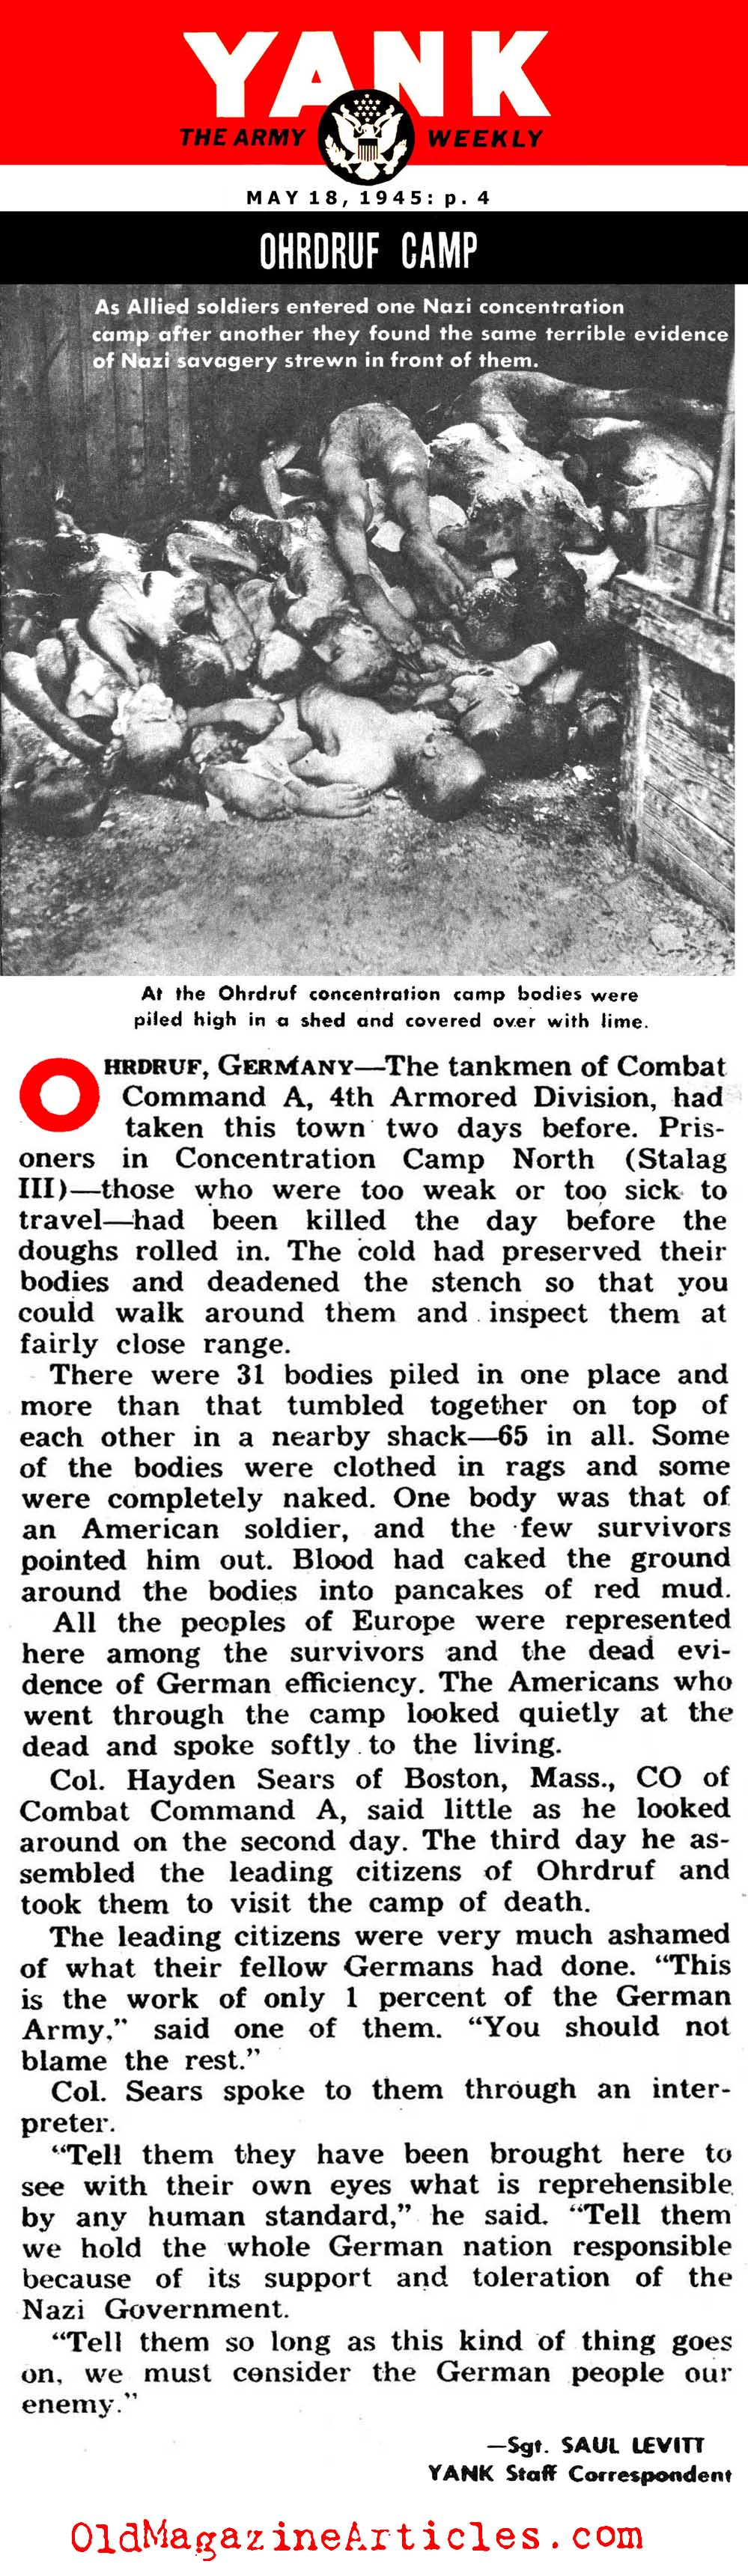 An American Corpse at Ohrdruf Concentration Camp (Yank Magazine, 1945)